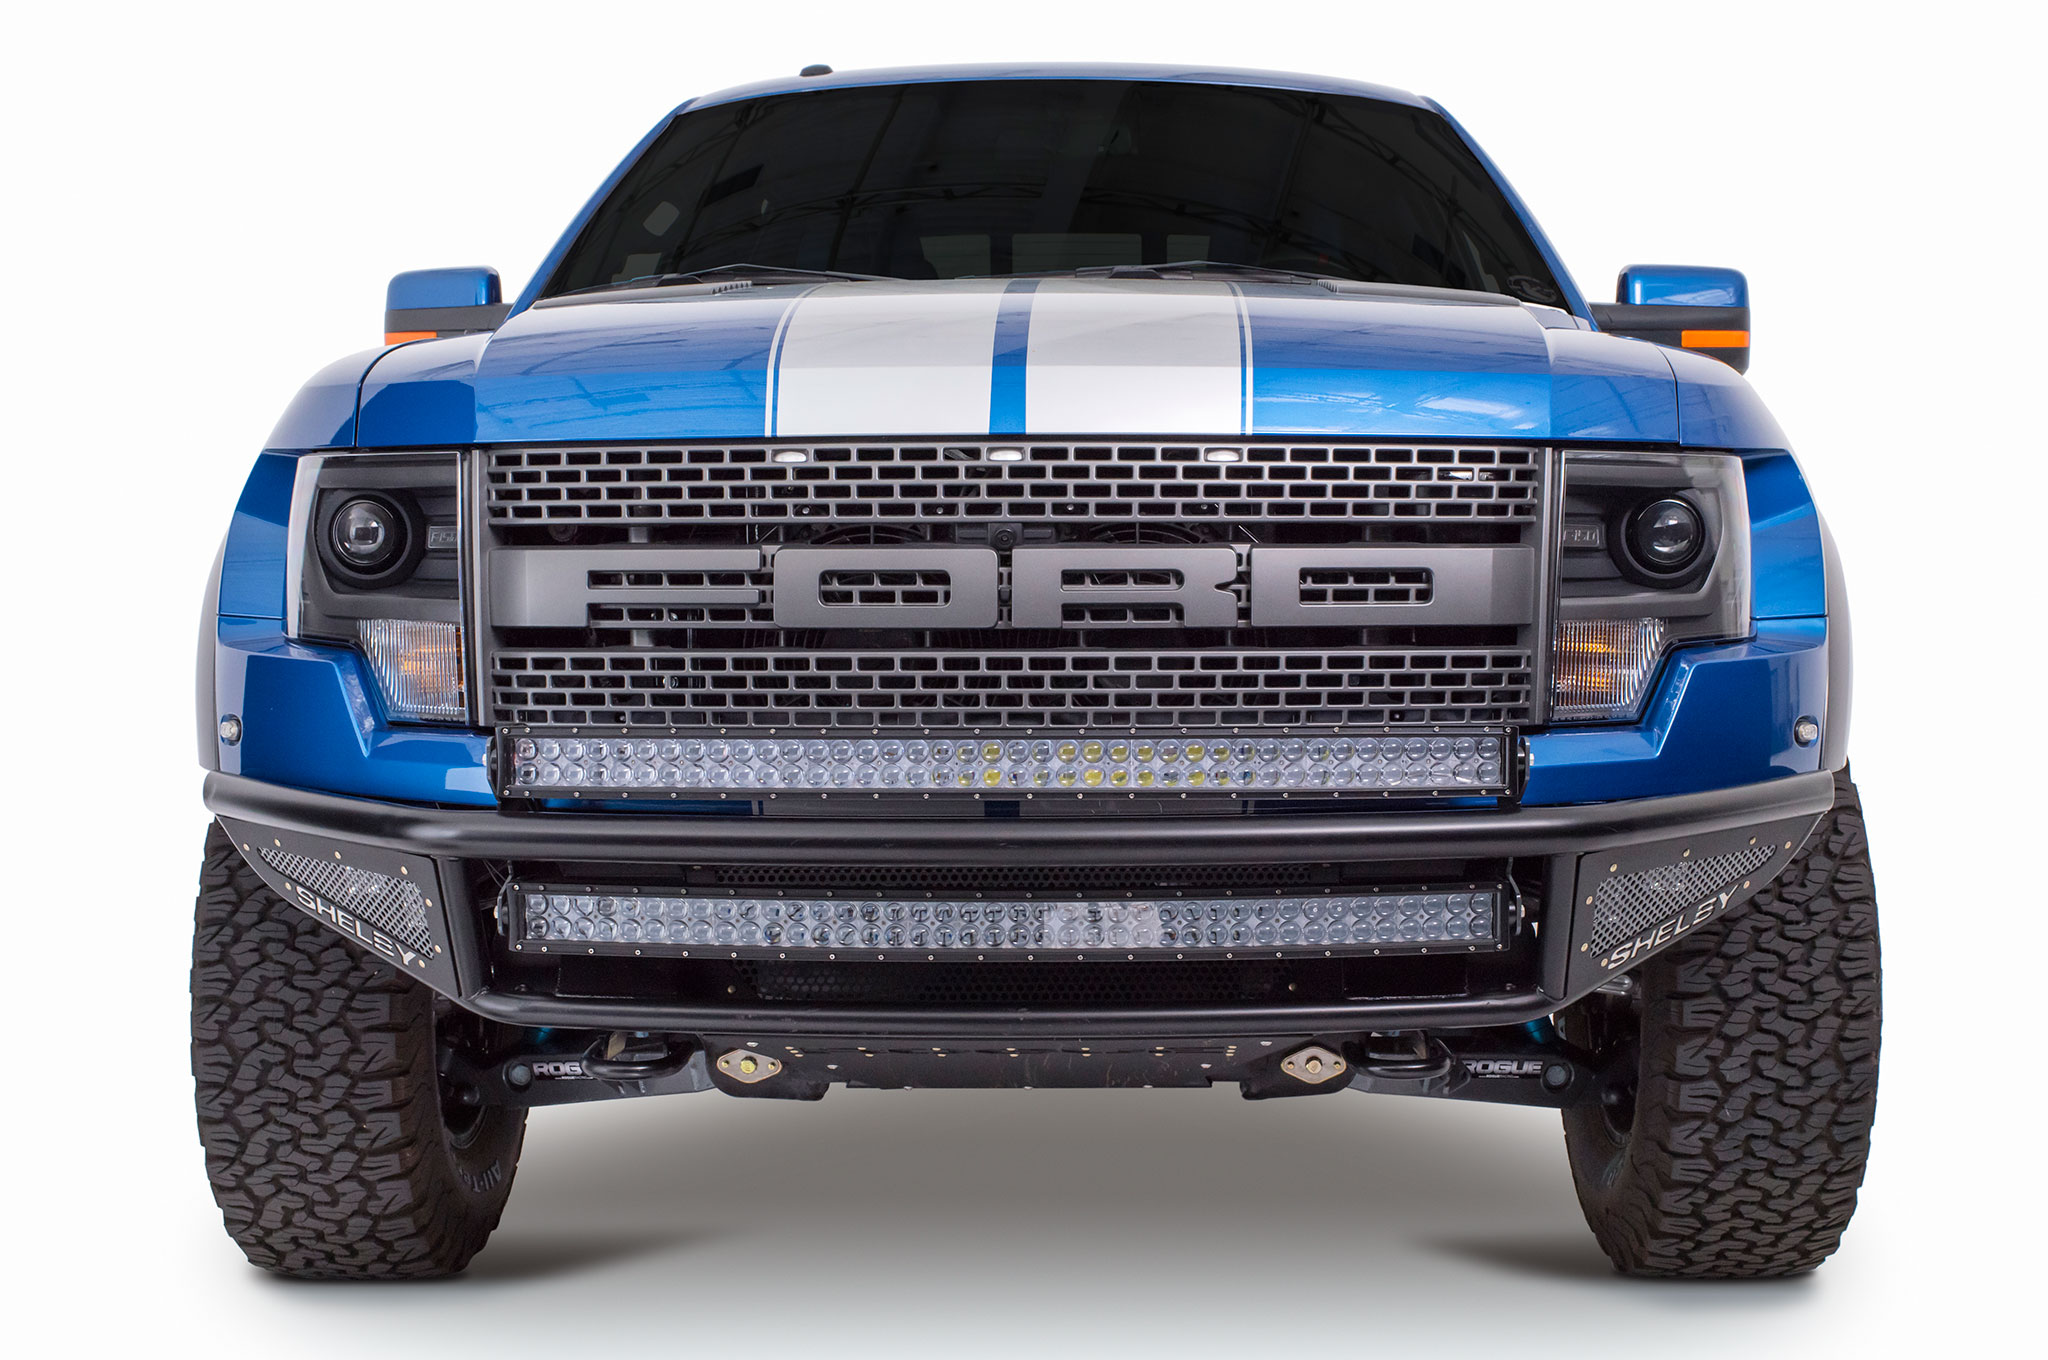 Shelby American Quot Baja 700 Quot Ford F 150 Svt Raptor Packs 700 Hp